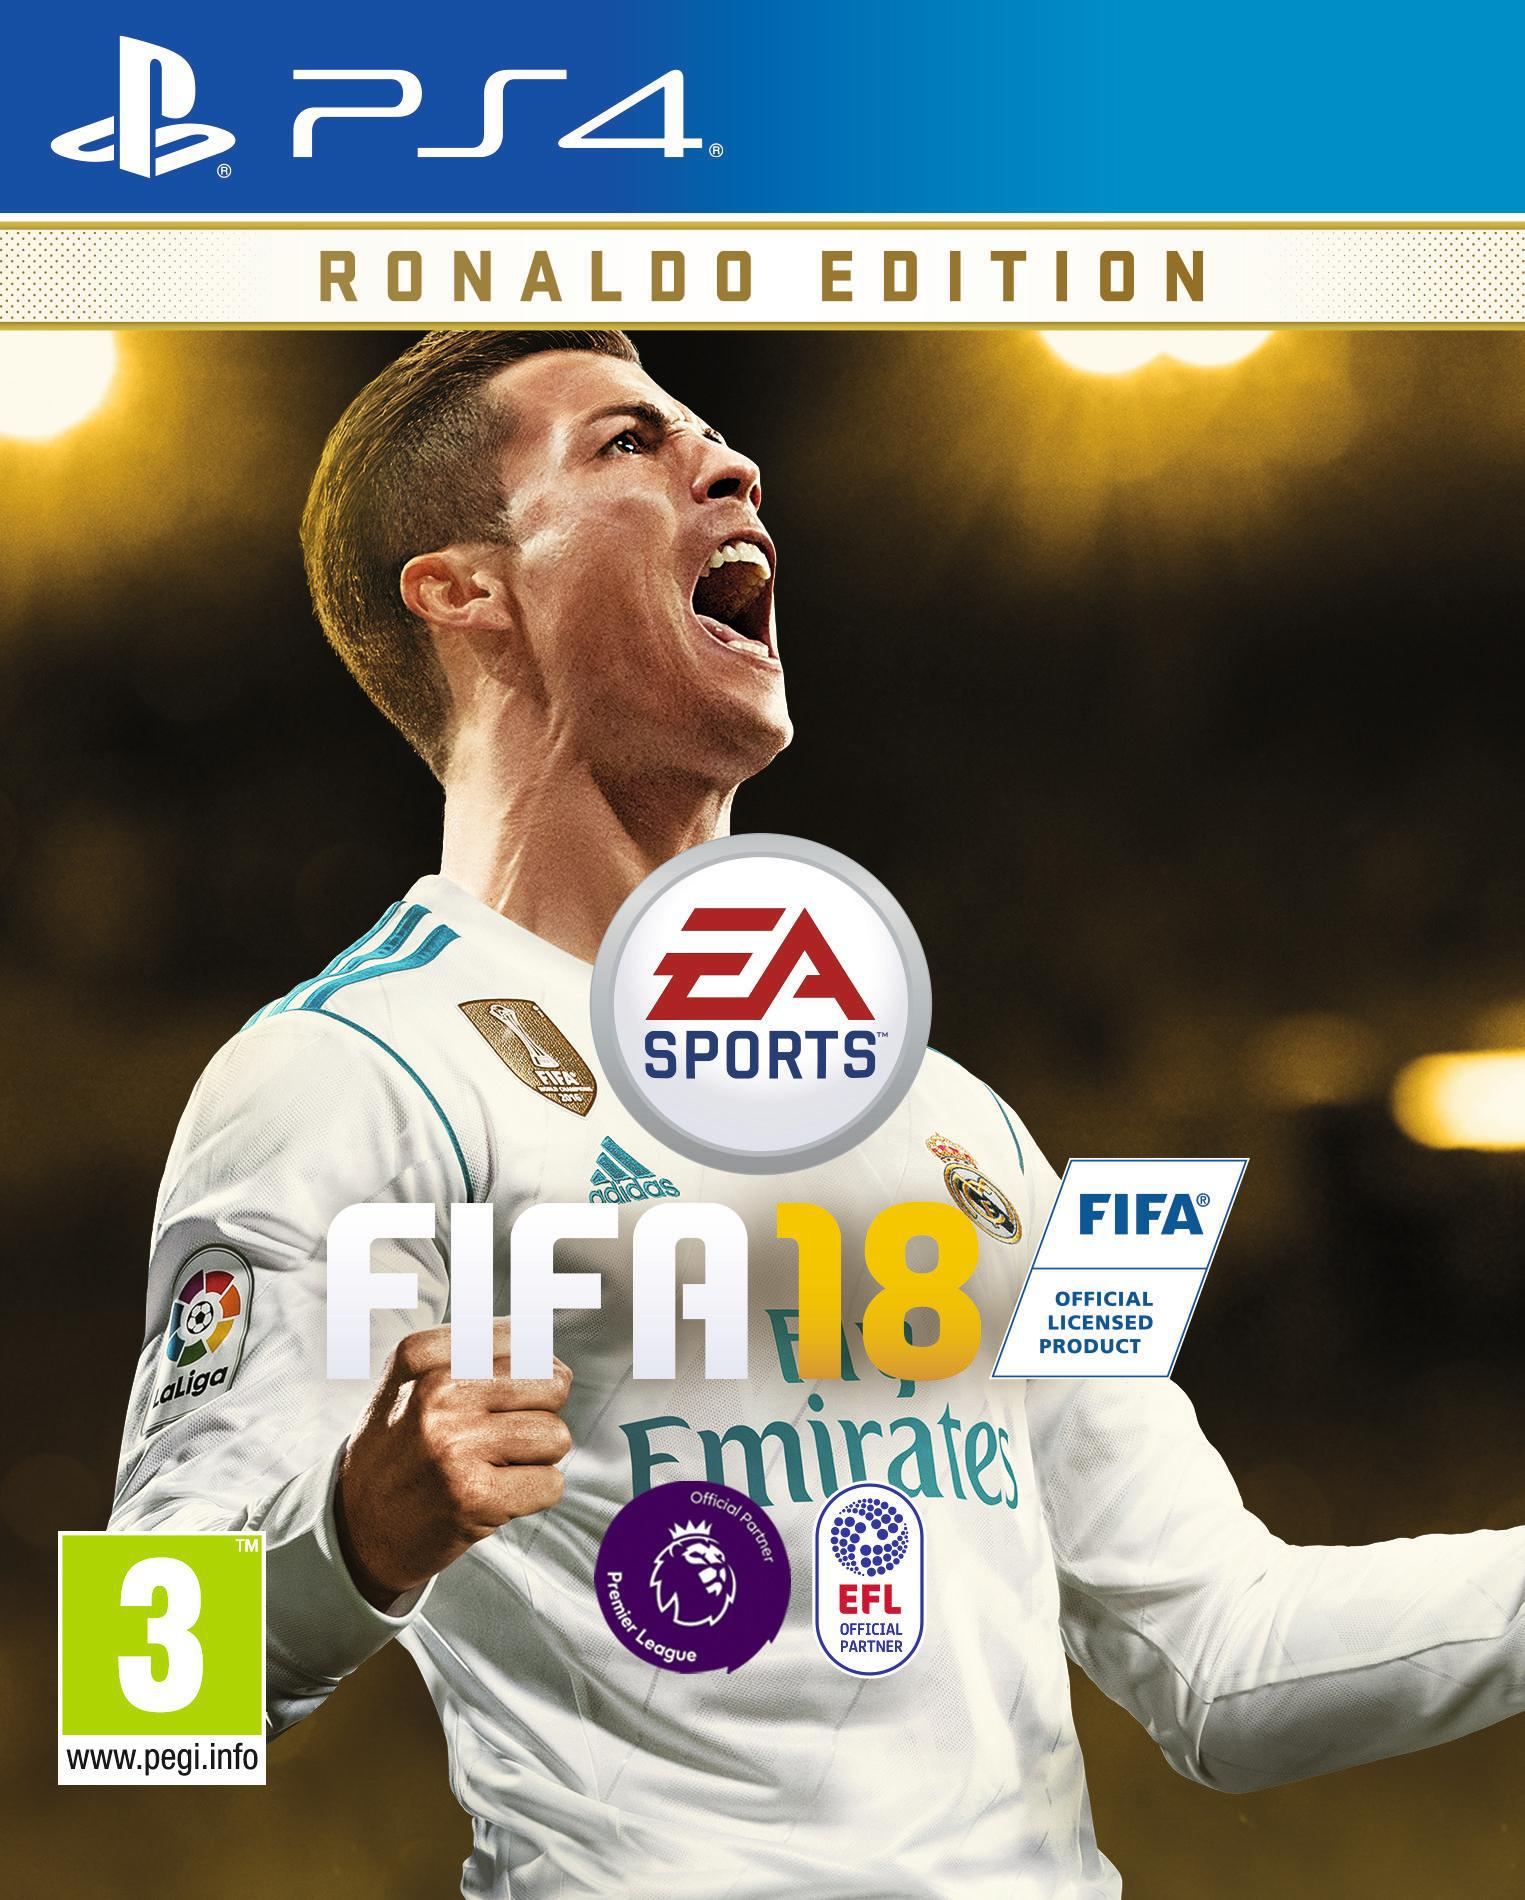 fifa-19-ronaldo-juventus_11tt65do22tn81bgb91xjorf0n-300x169 Early Fifa 19 Download for Android iOS Mobile Phone